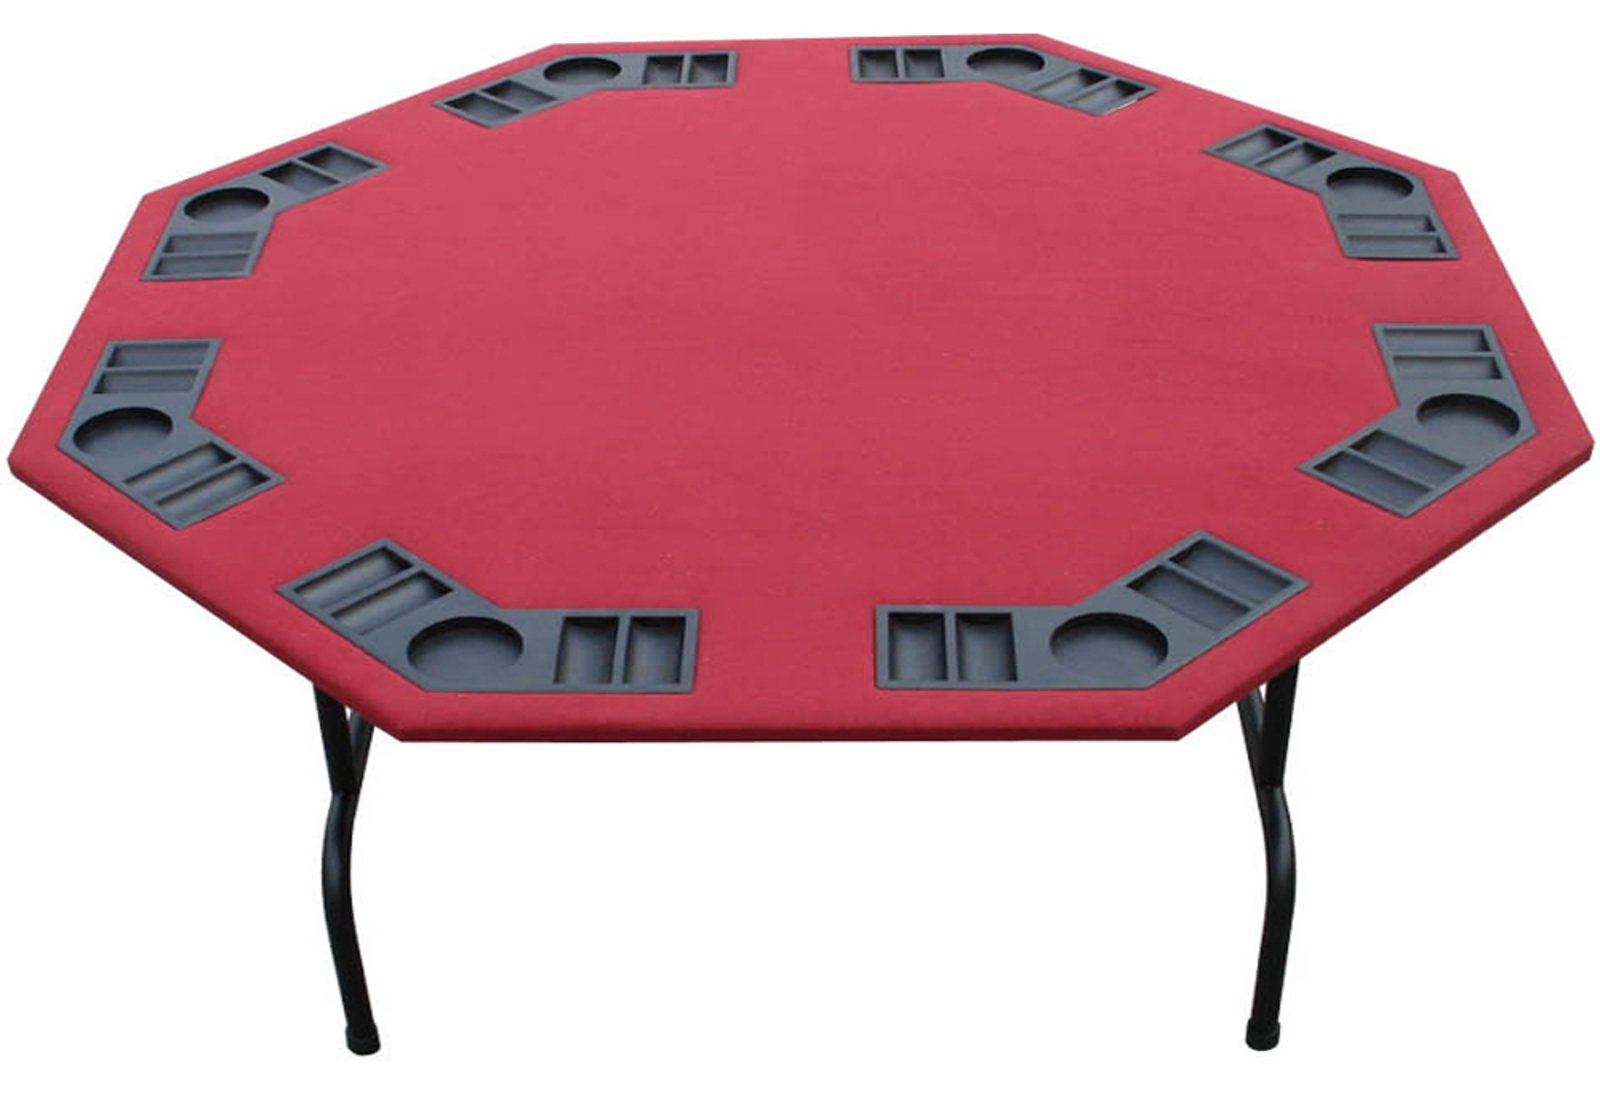 Folding Octagon Poker Table For Texas Holdem, Cards & Game. Standard 52'' In Green Or Black Felt Or Large 60'' Burgundy Tables. Steel Legs, 8 Player, Built In Cup holders & Chip Trays (burgundy, 60'')